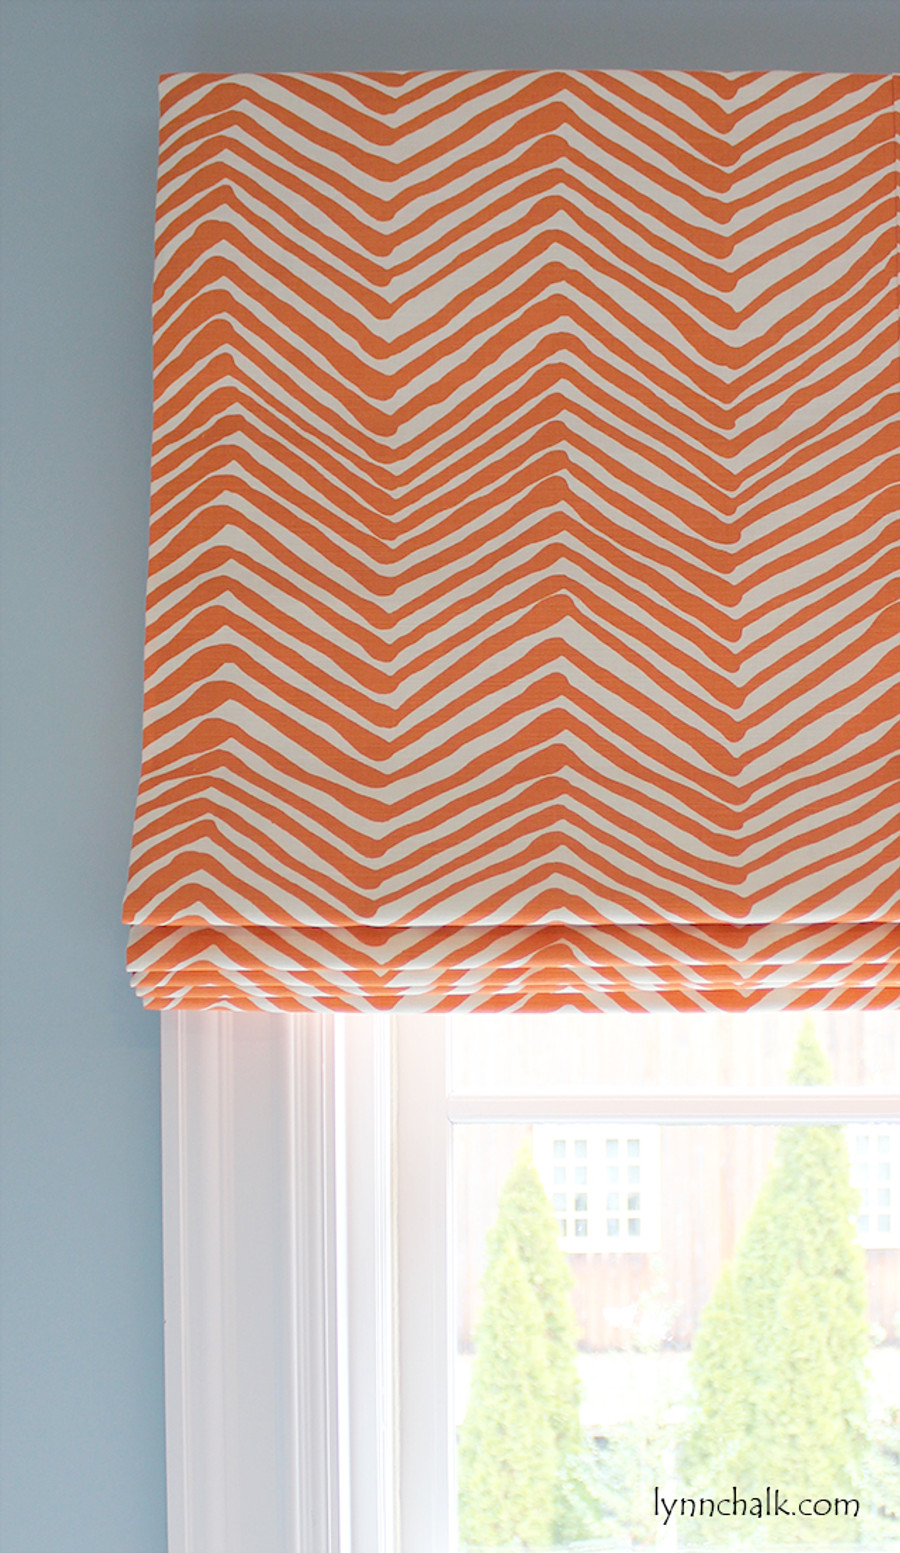 Roman Shade in larger scale Zig Zag in Orange